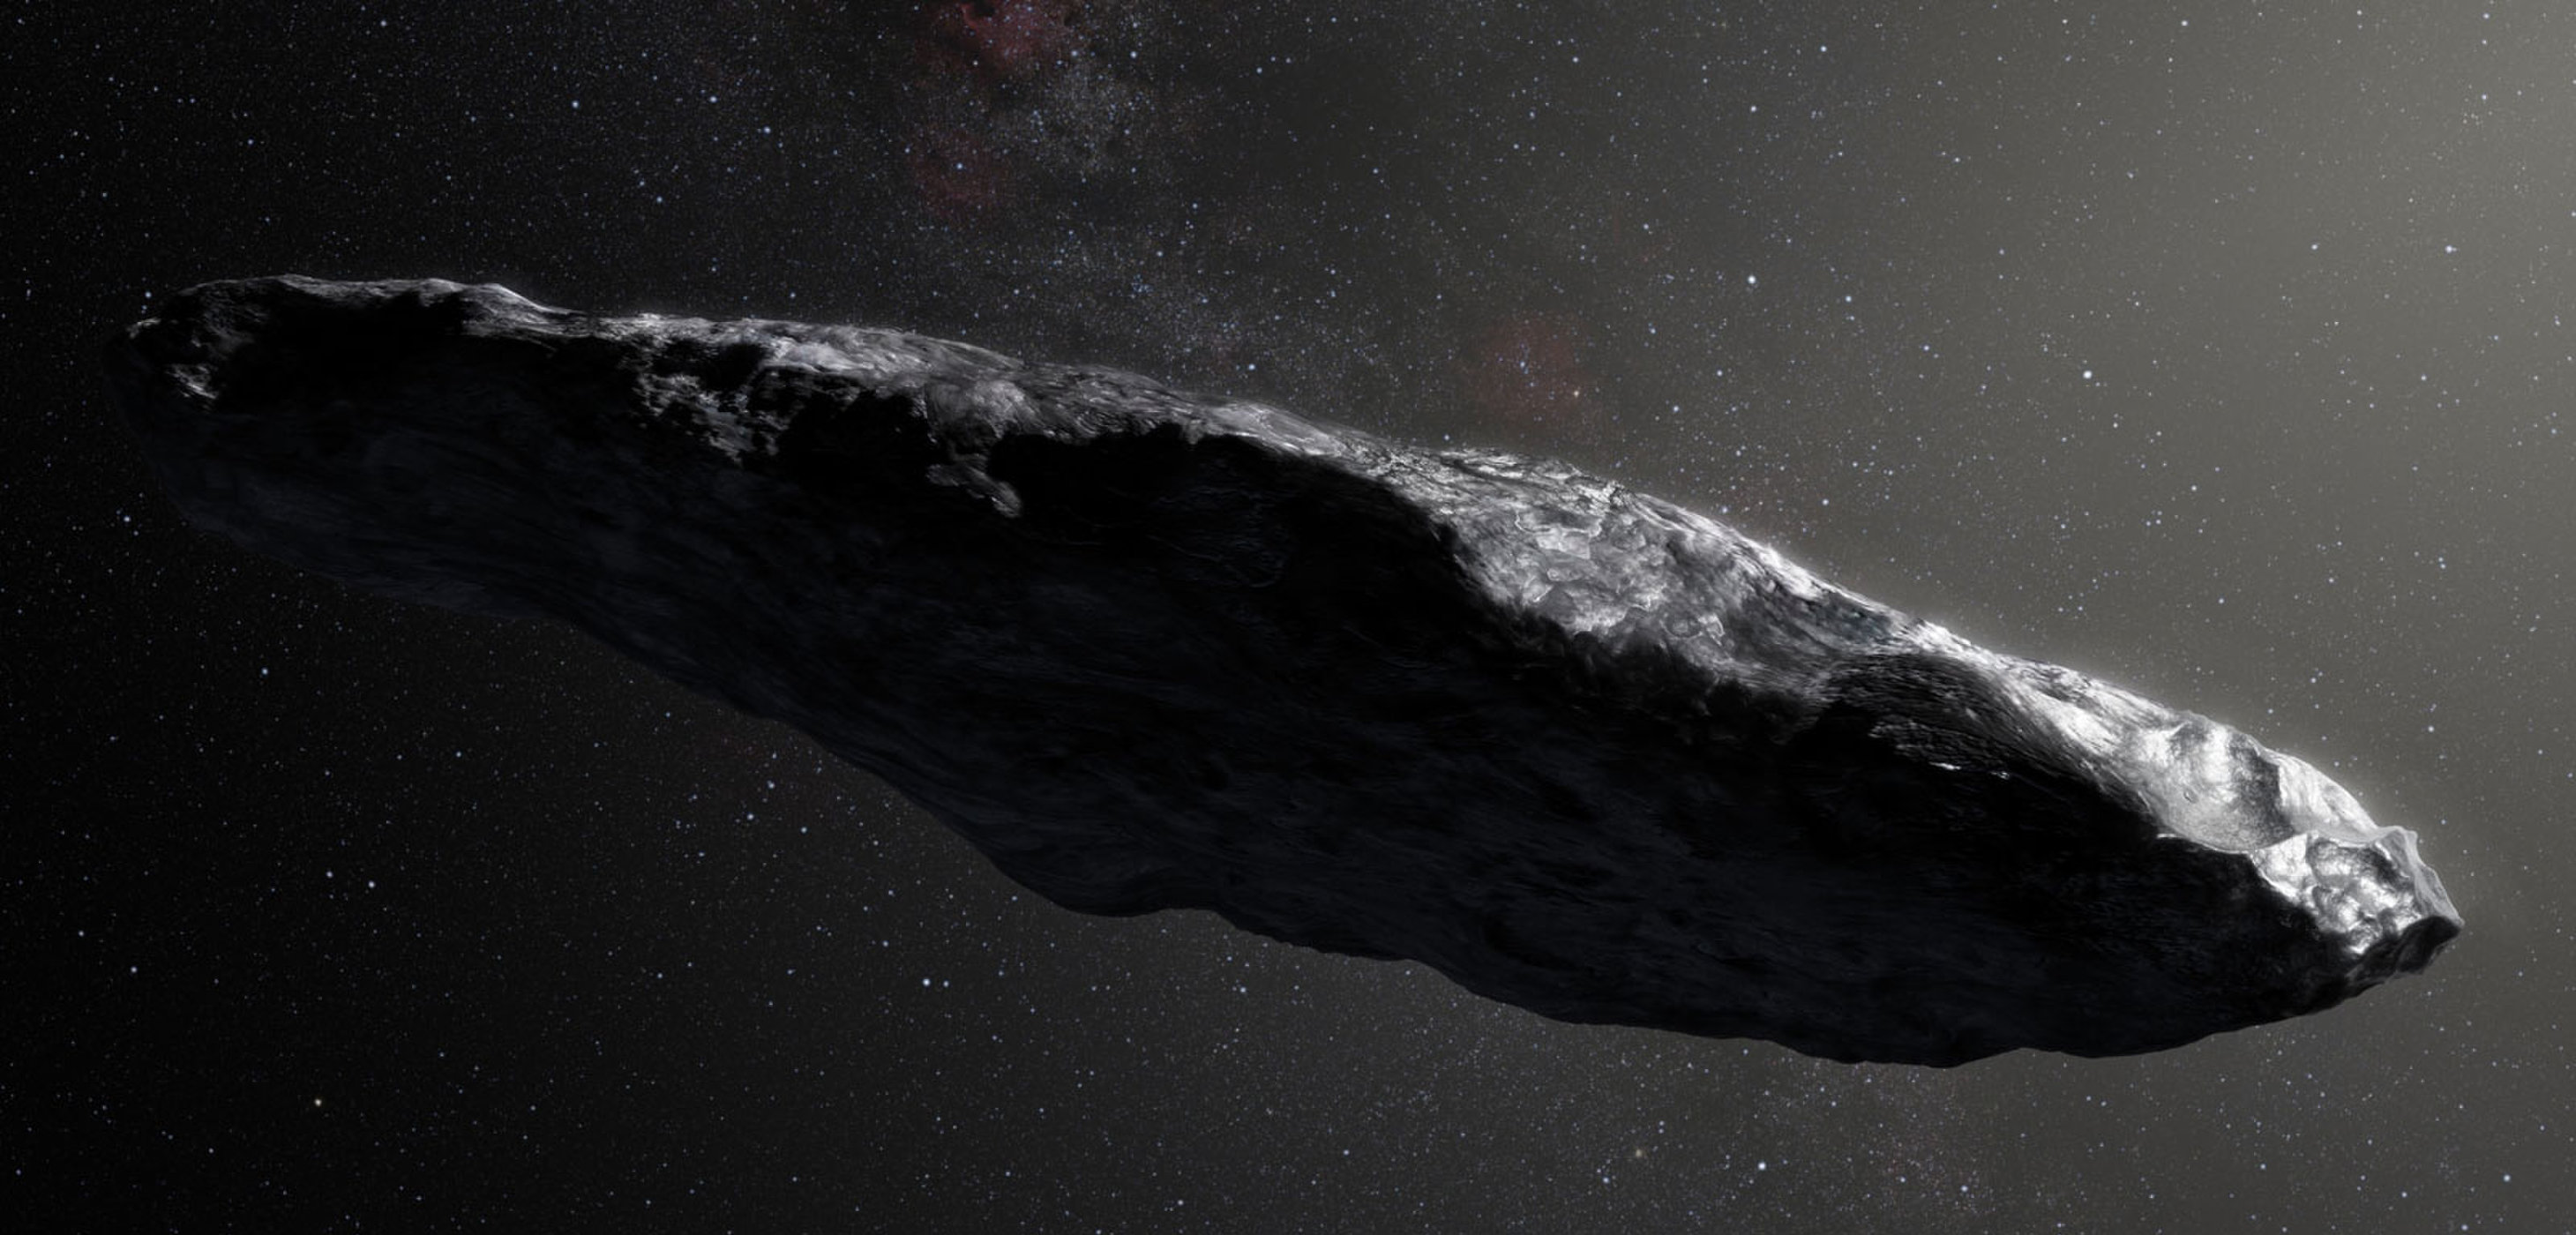 An artist's impression of Oumuamua, the interstellar space rock that took a shortcut through the solar system two months ago.